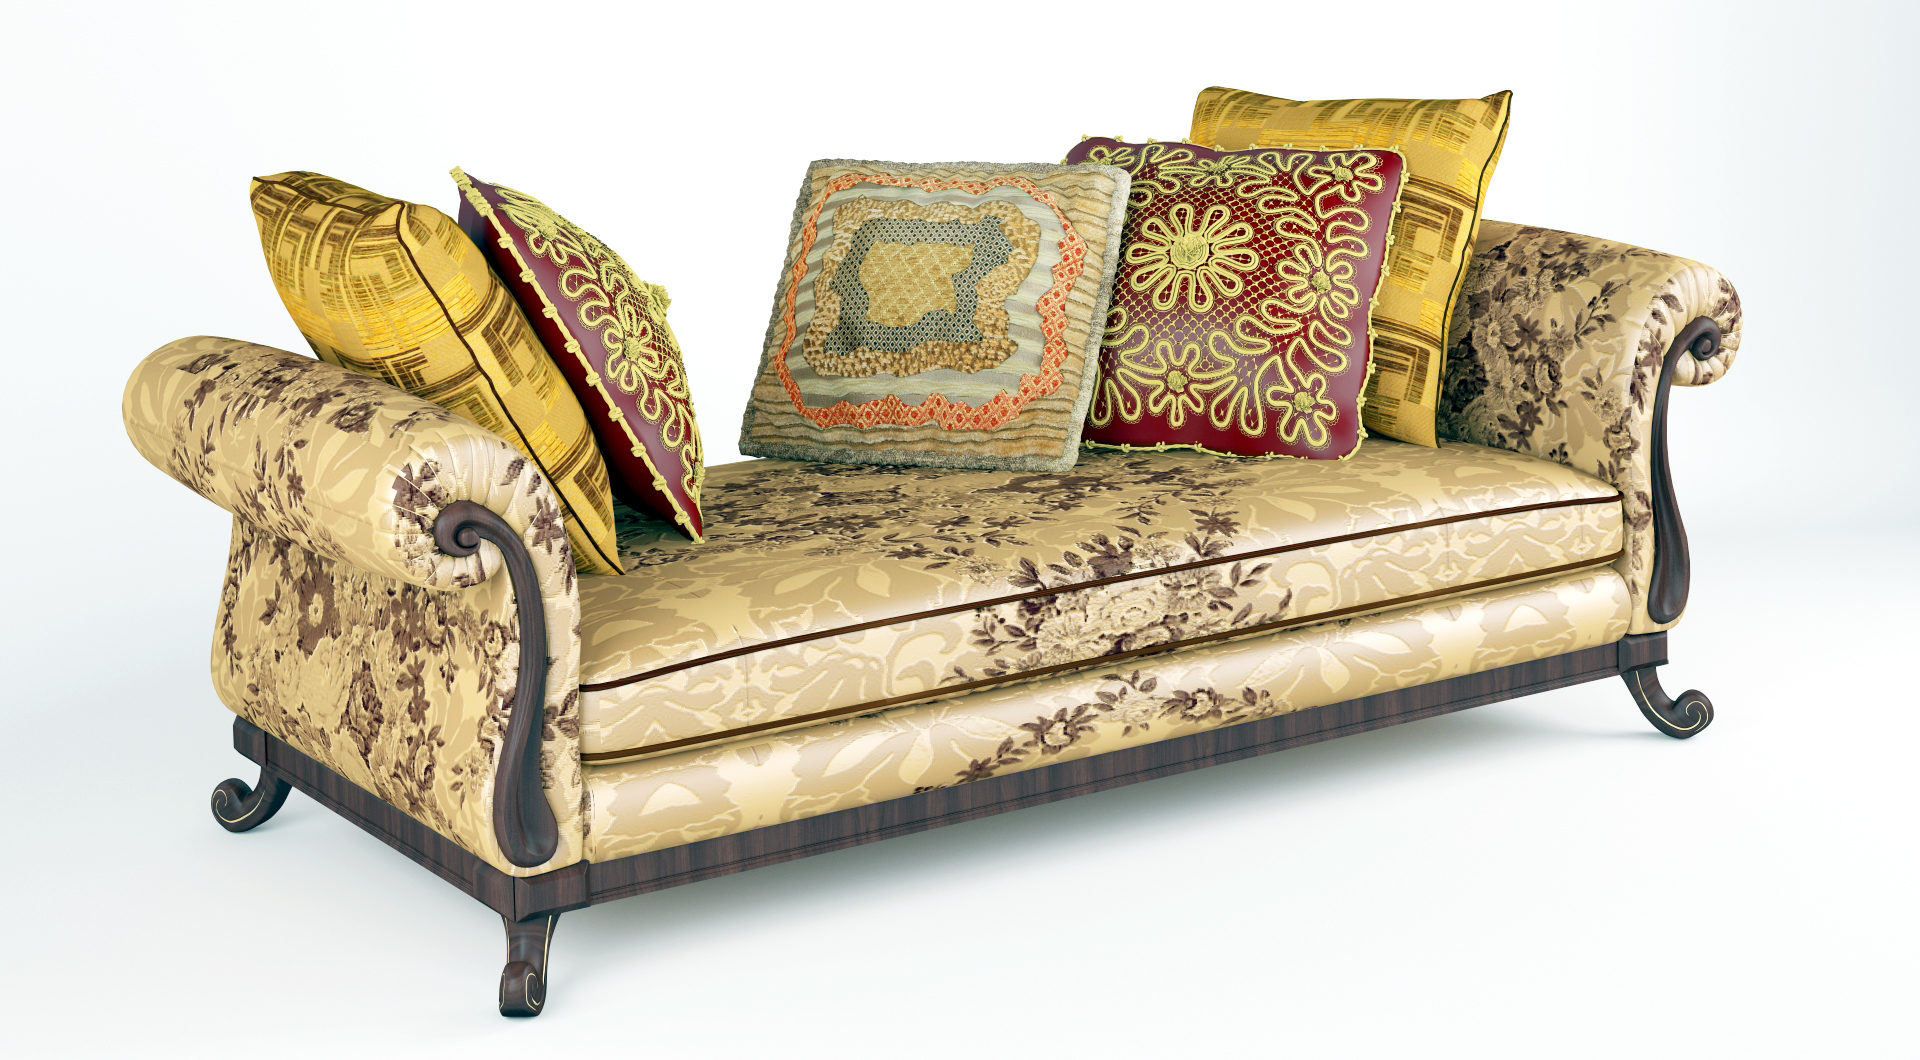 royal sofa with pillows 3d model max fbx ma mb obj 286254